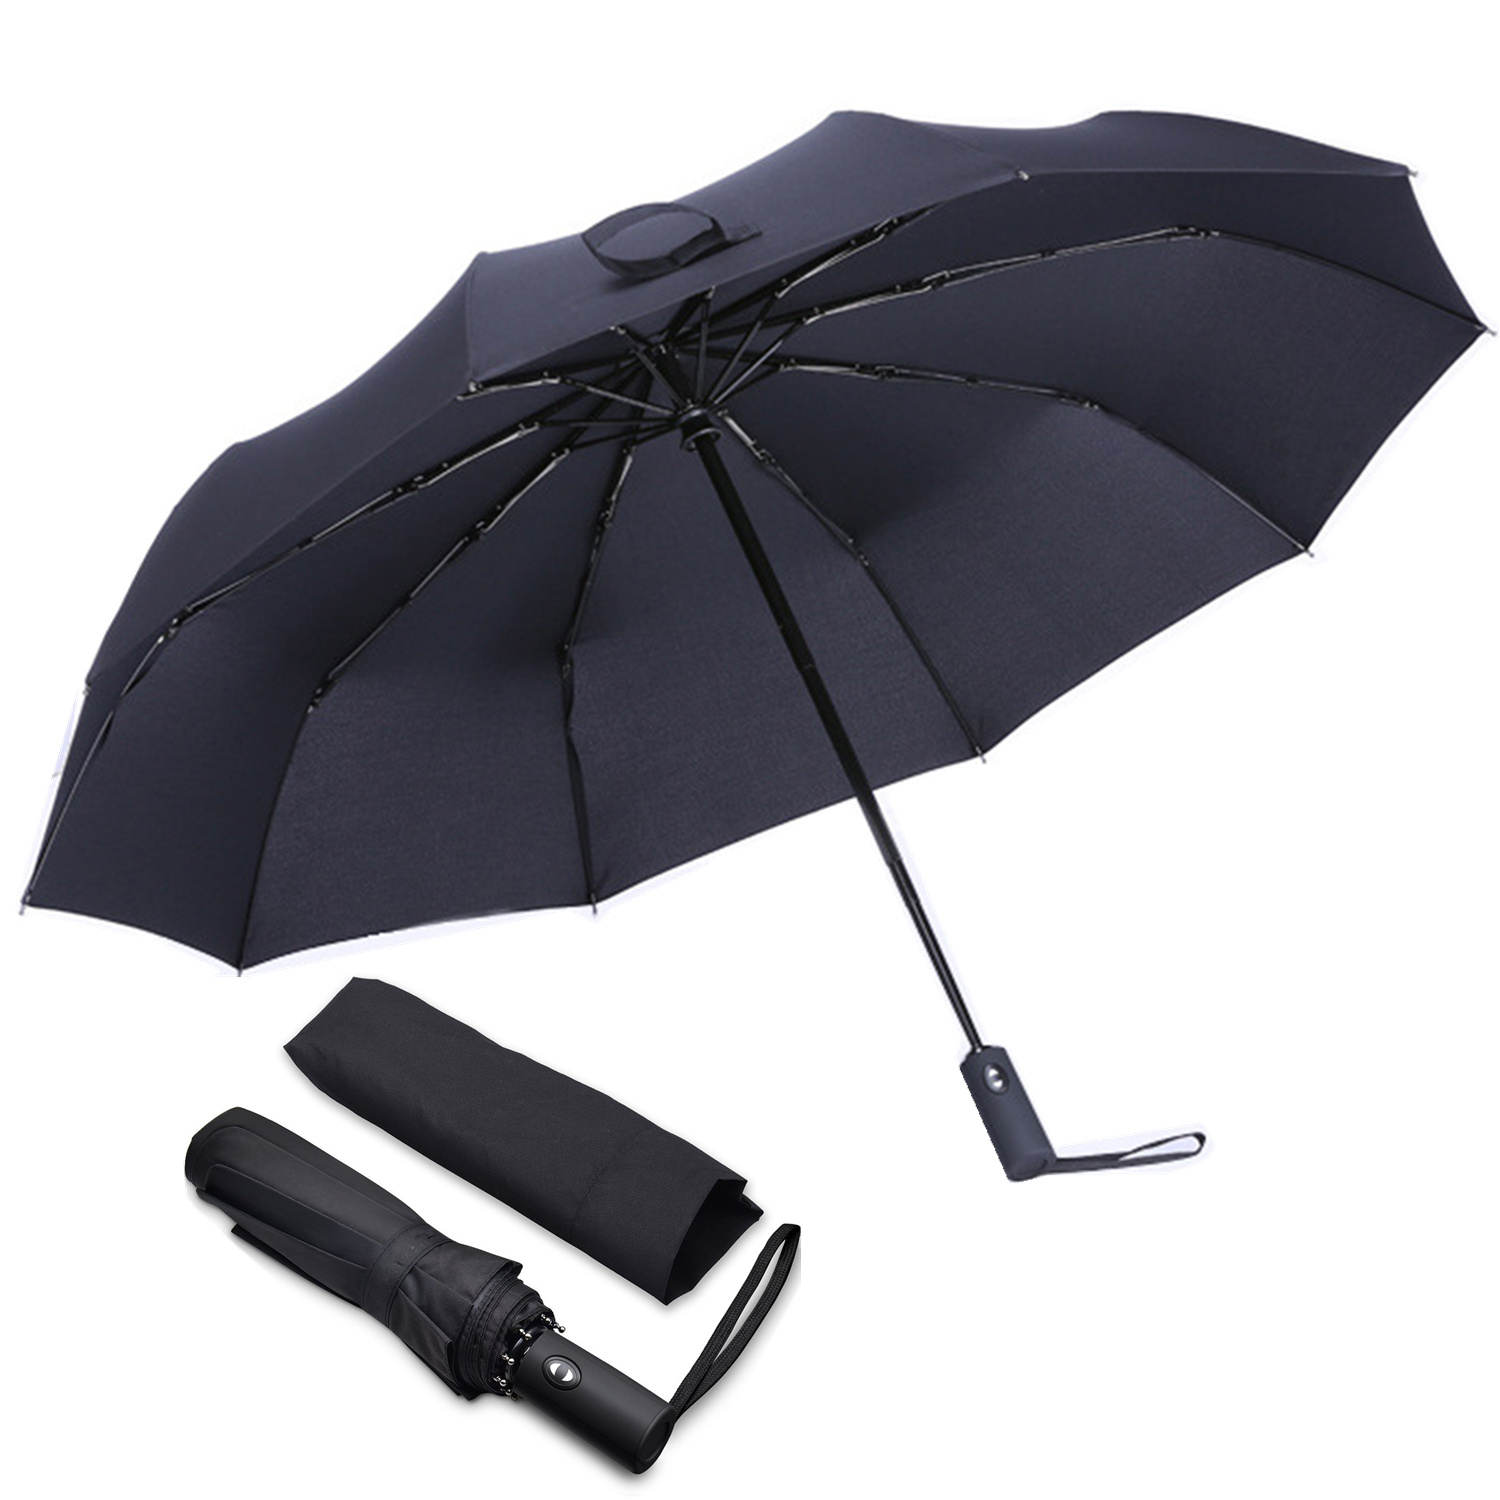 YOOAP Folding Umbrella Windproof Automatic Umbrella Stable Compact And Durable Lightweight Ergonomic Handle Adult